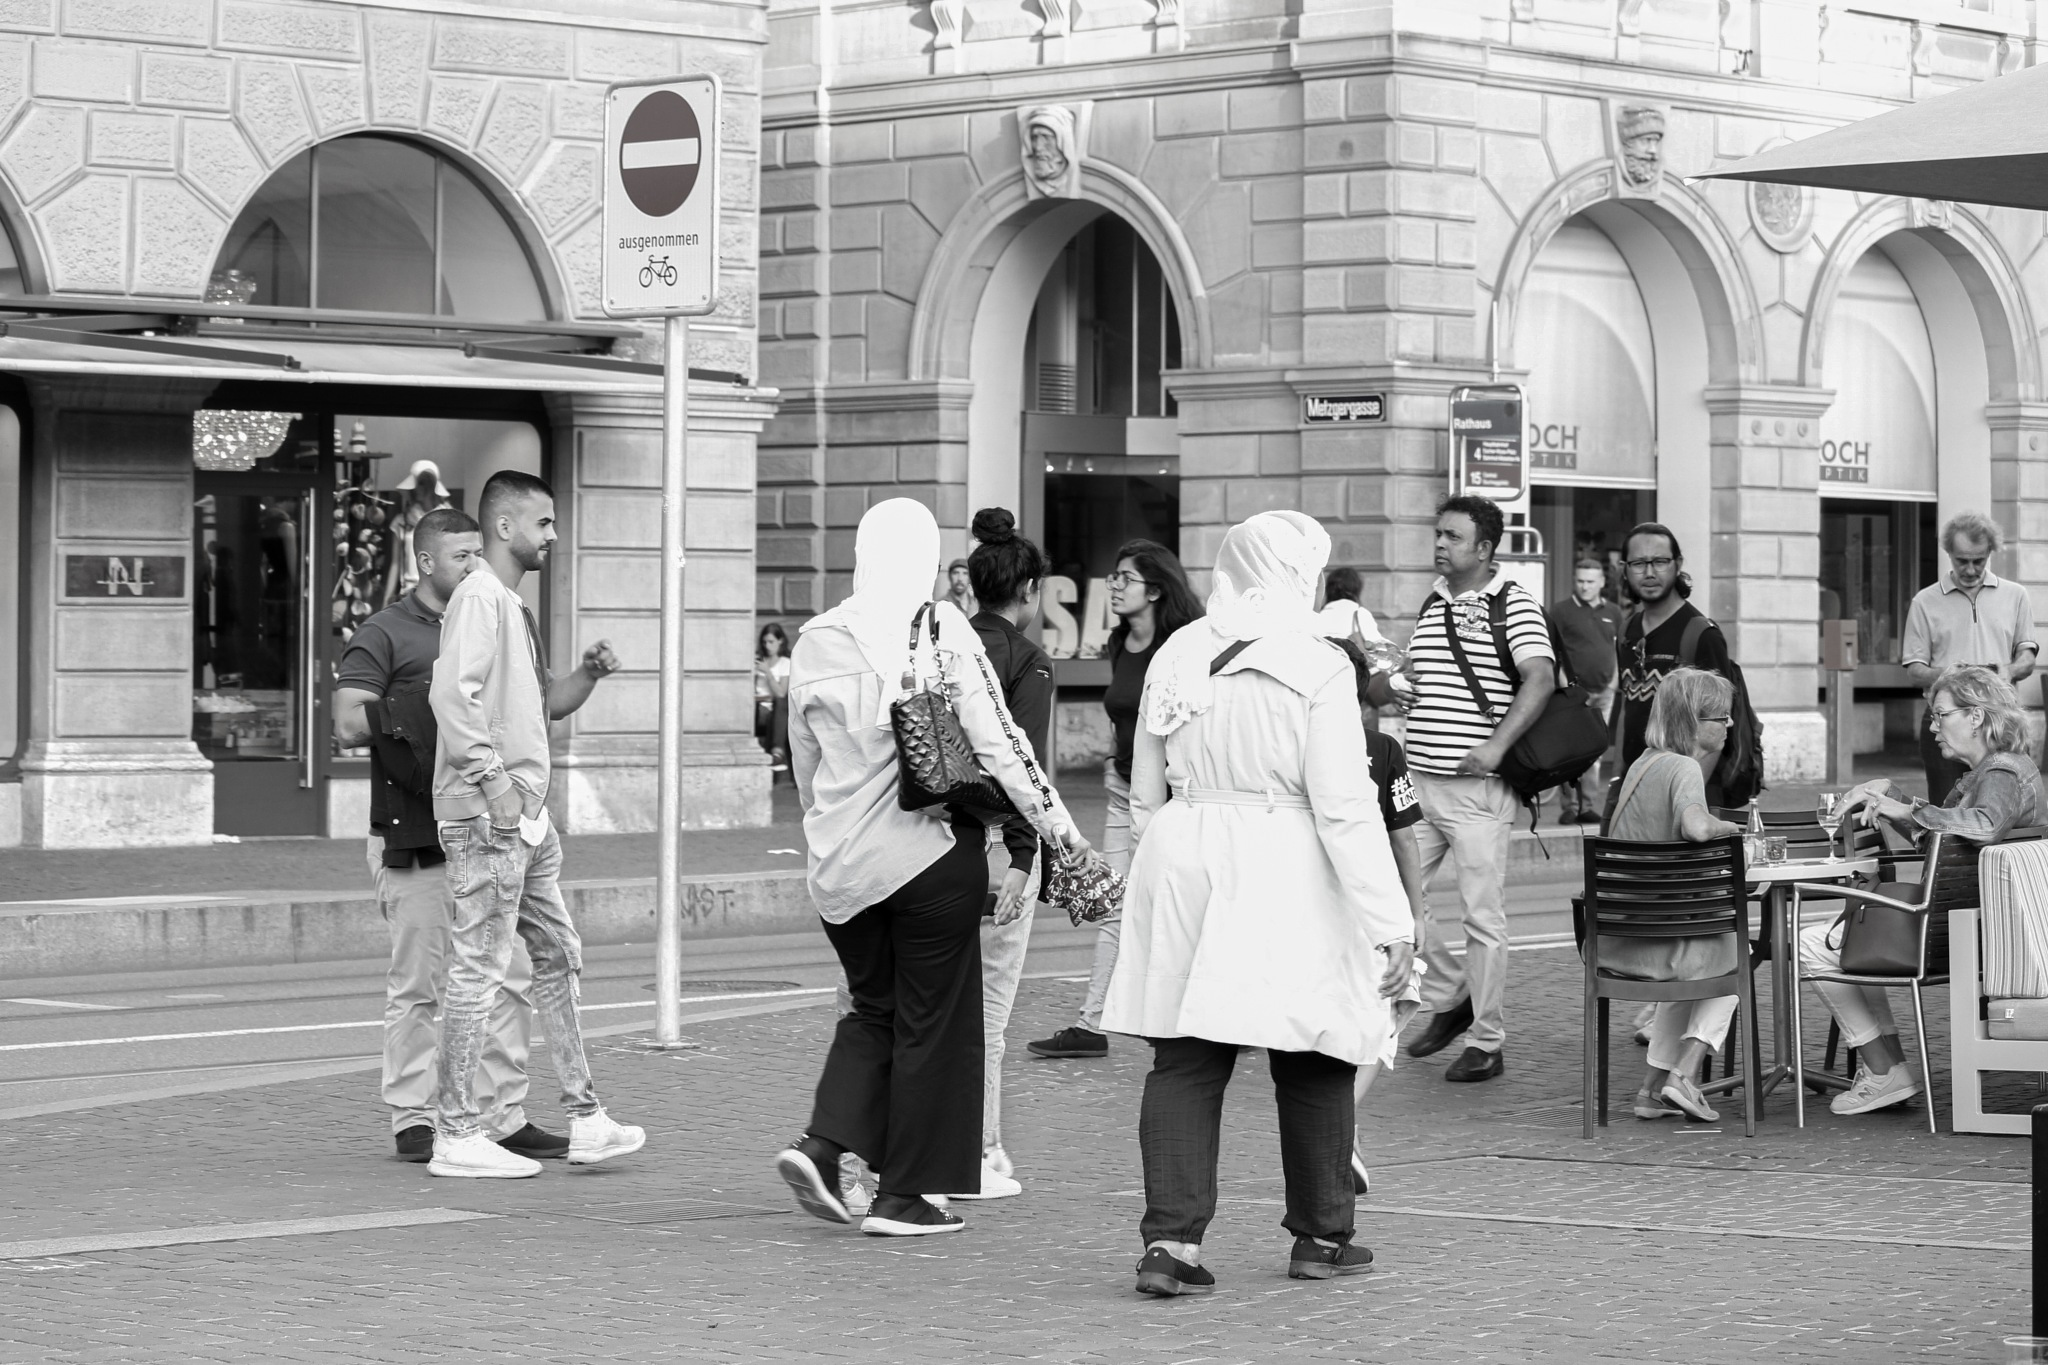 A street Drama in Zurich by Mohammad Ruhul Amin